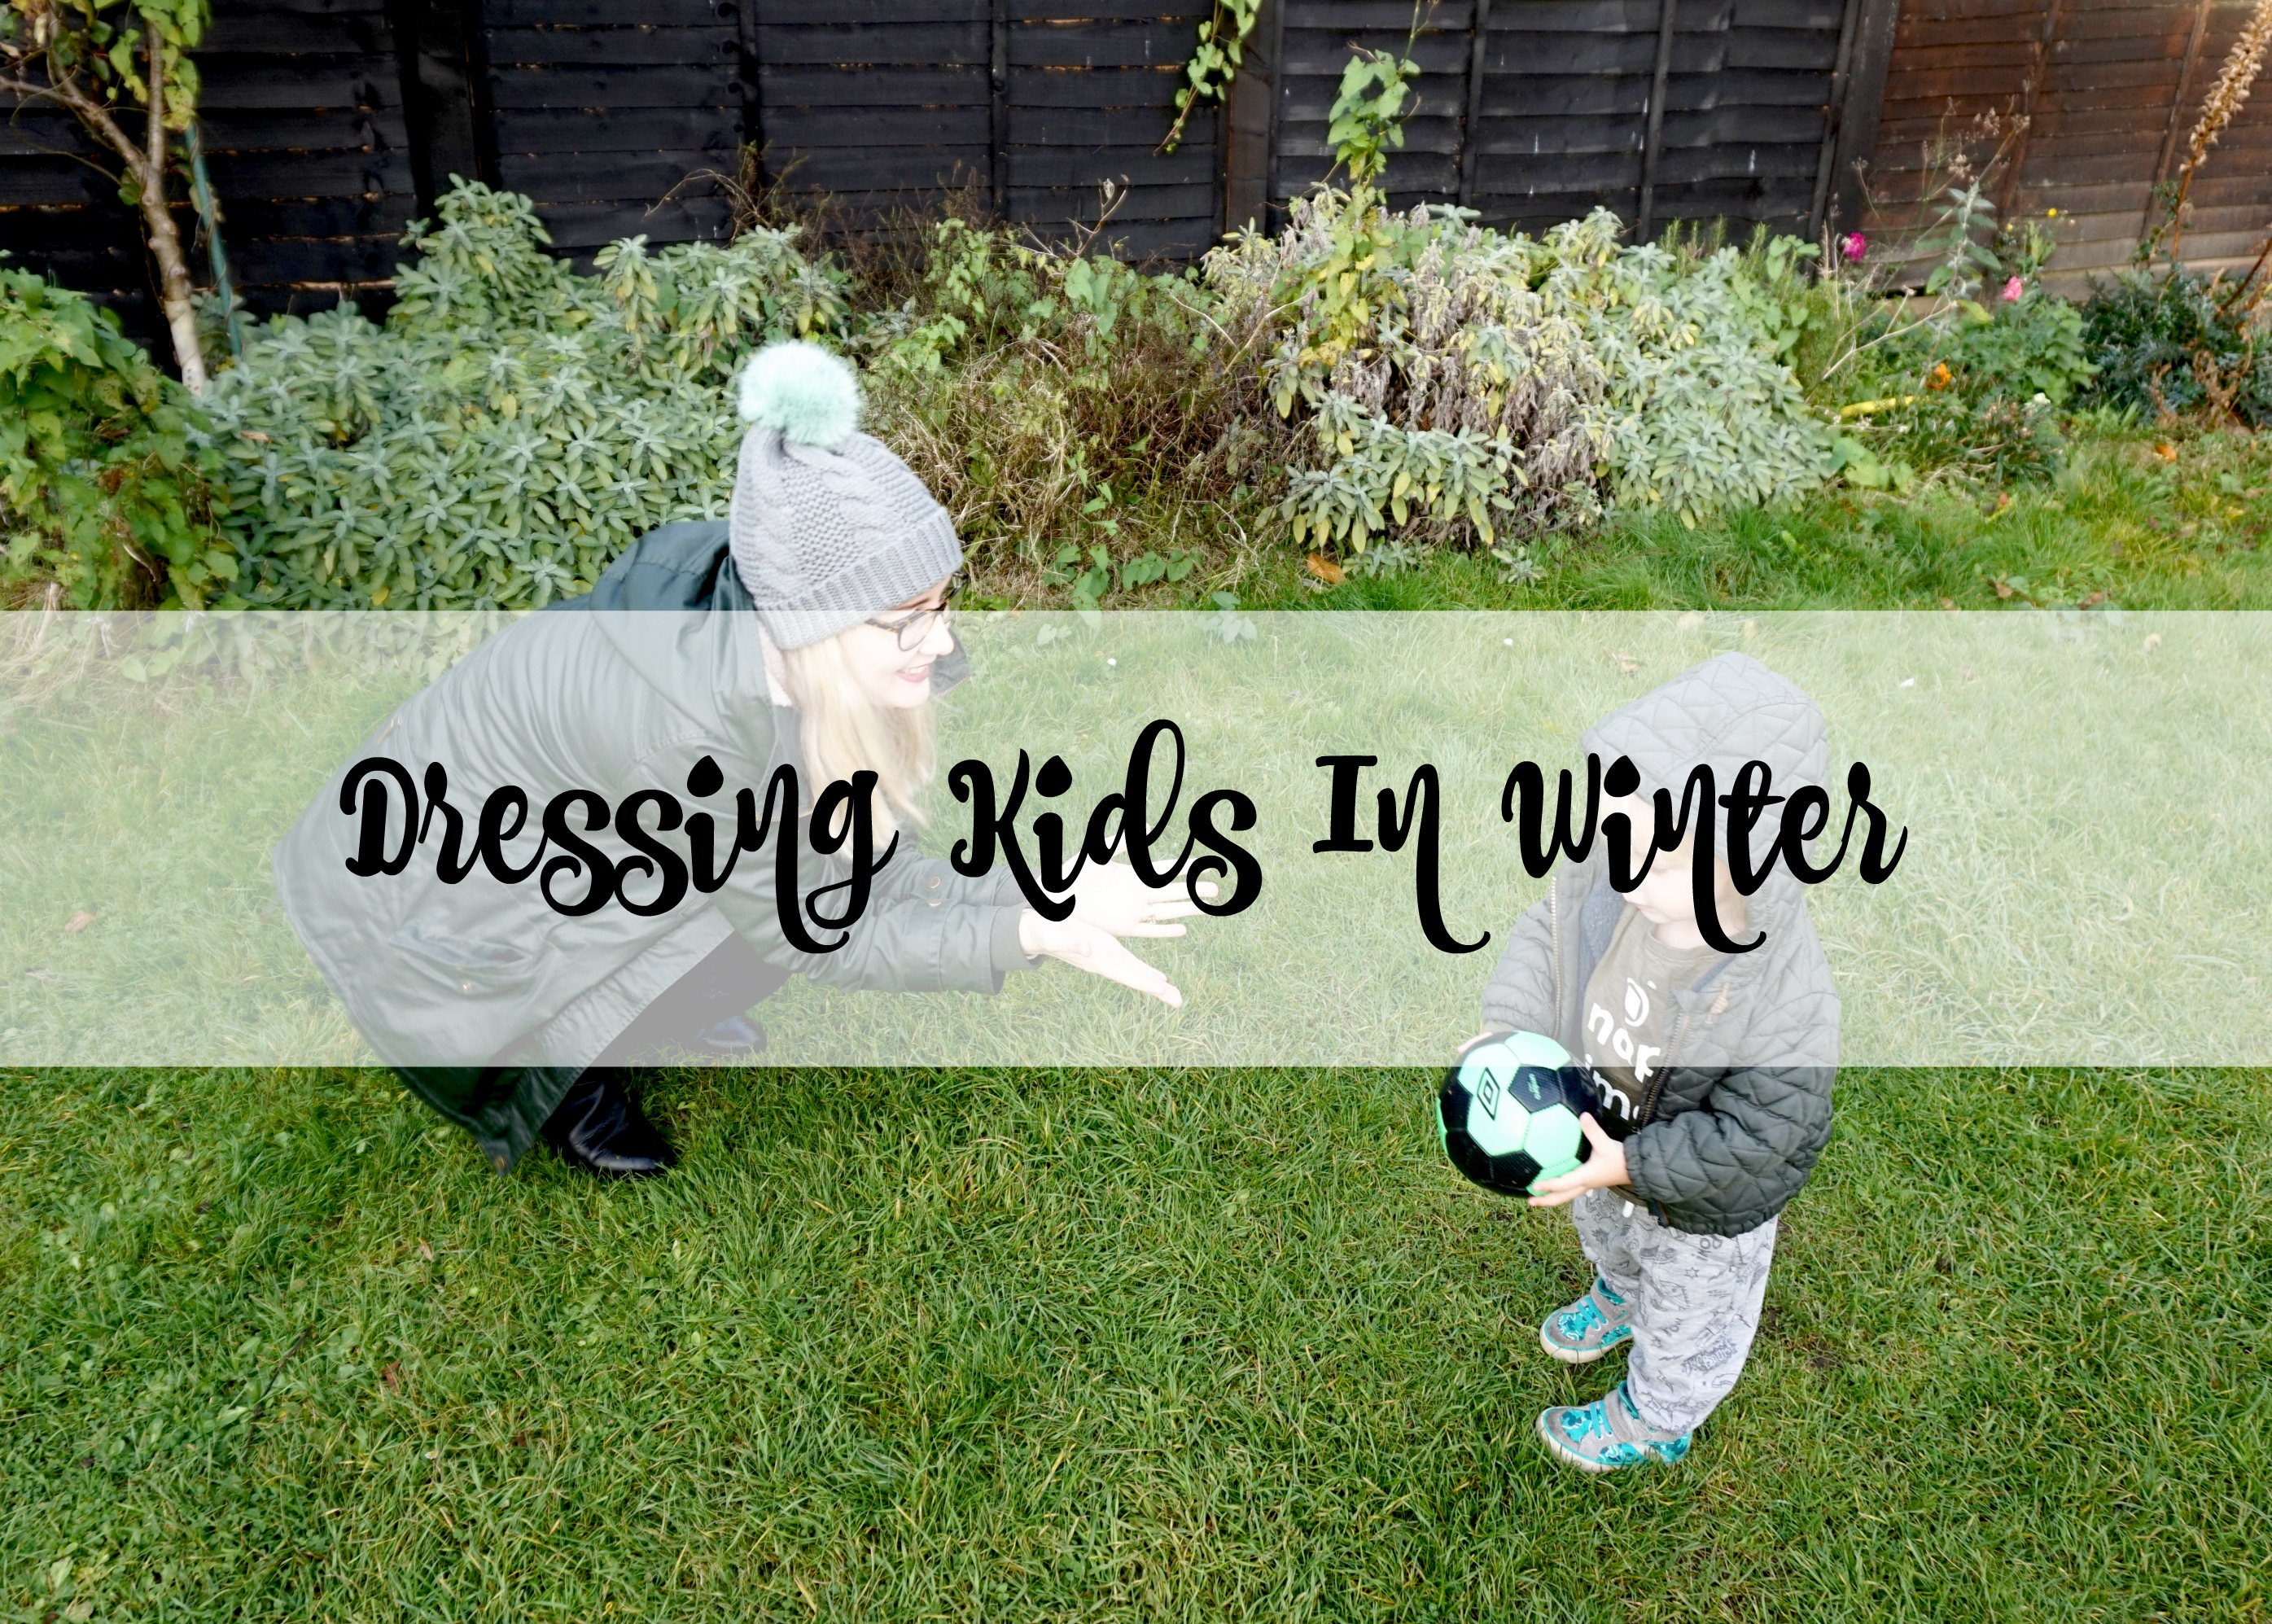 dressing kids in winter